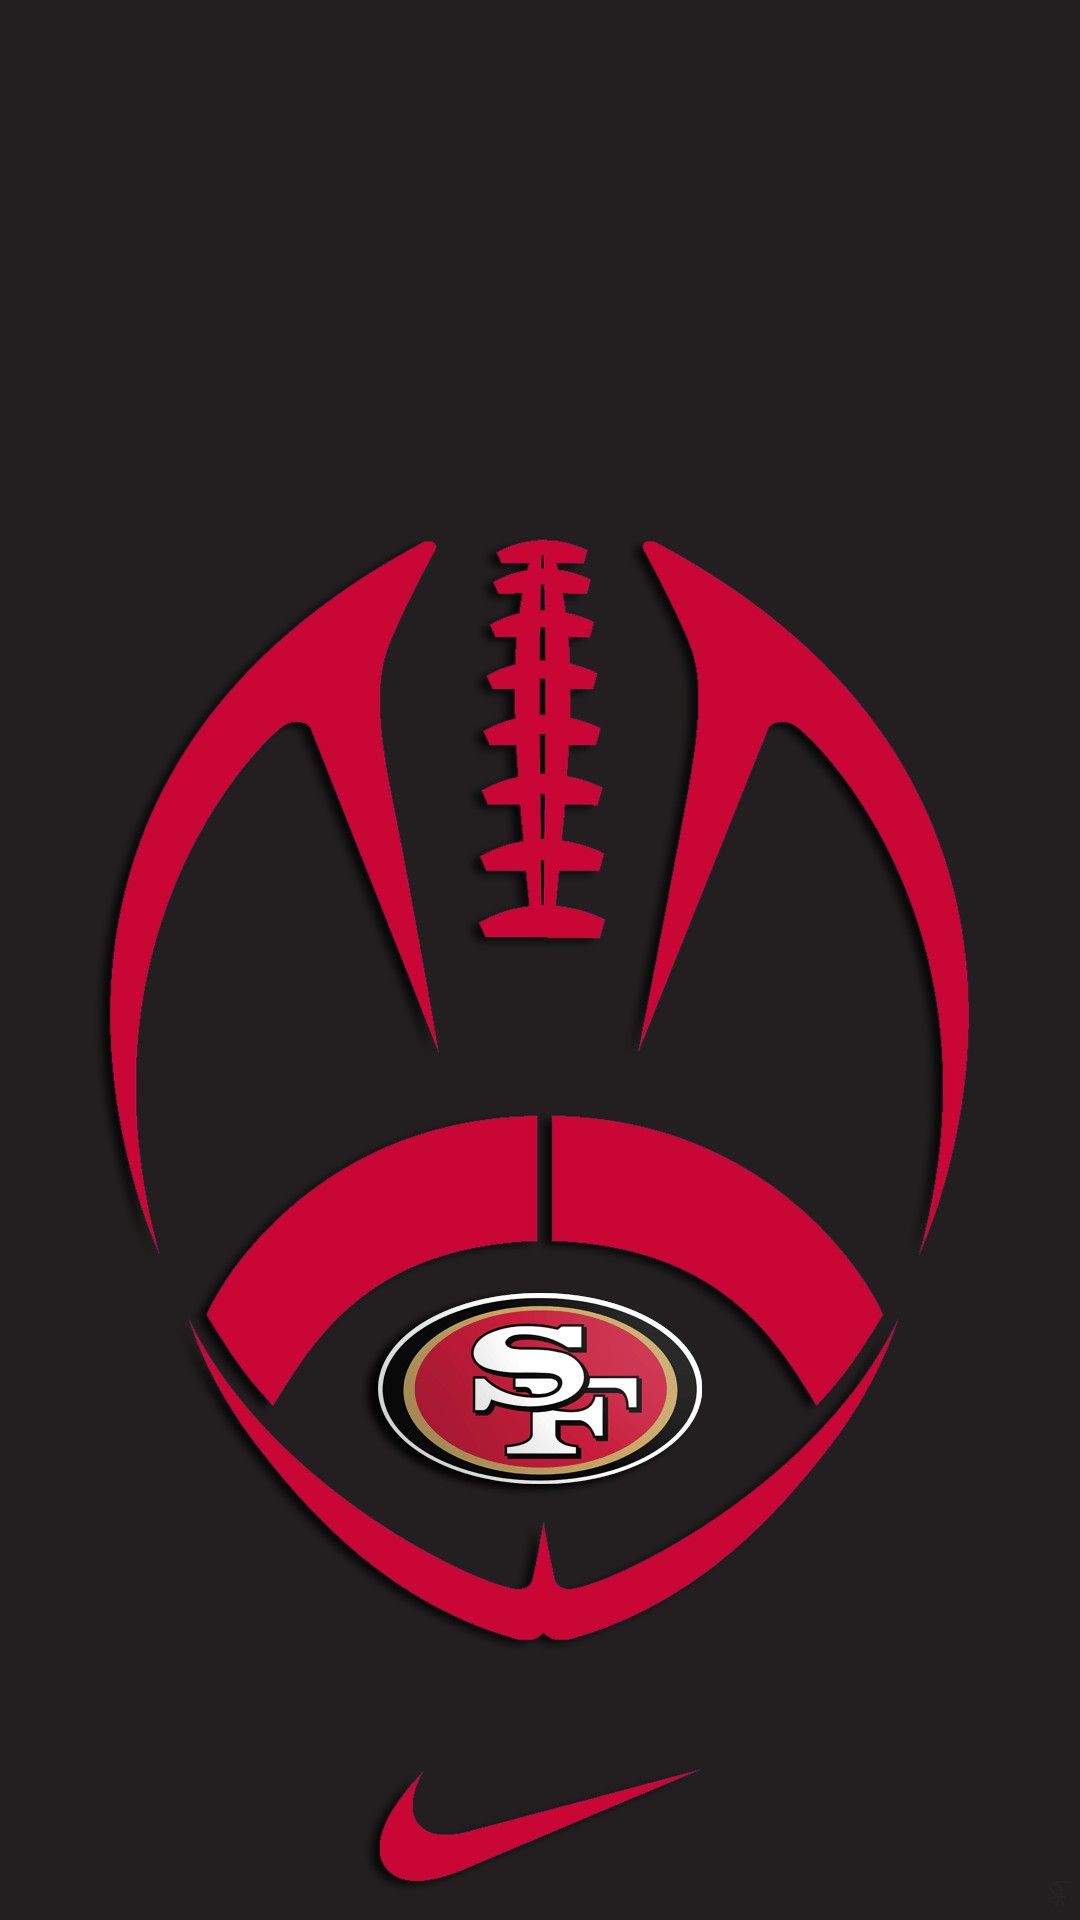 Beautiful Rugby Wallpaper Iphone San Francisco 49ers Logo San Francisco 49ers 49ers